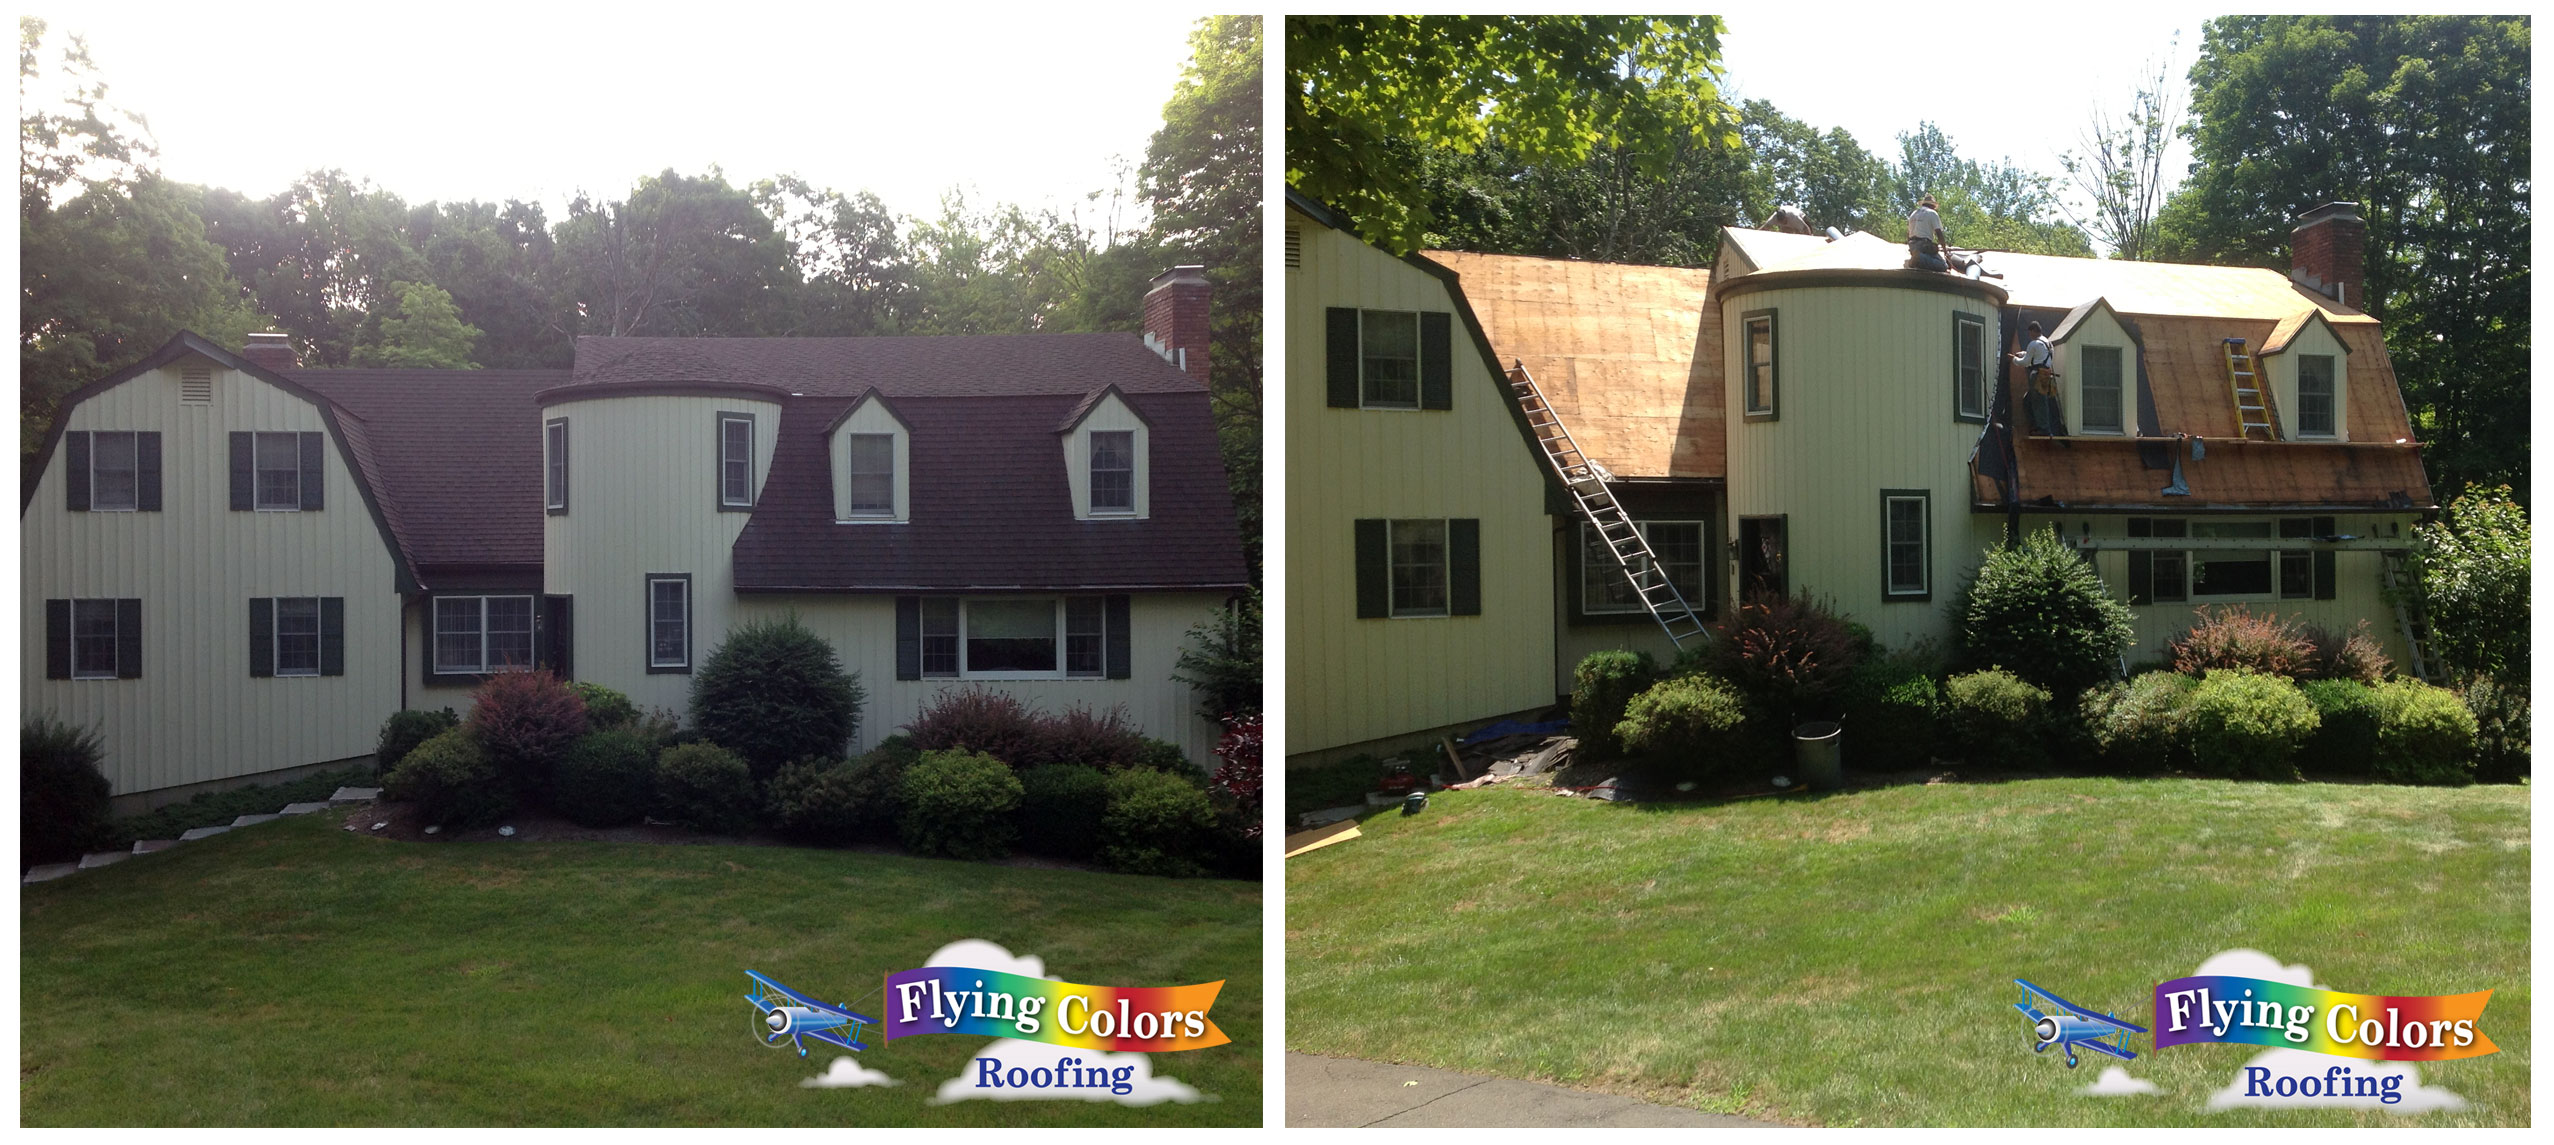 Flying Colors Roofing service Fairfield County CT (203) 918-5156